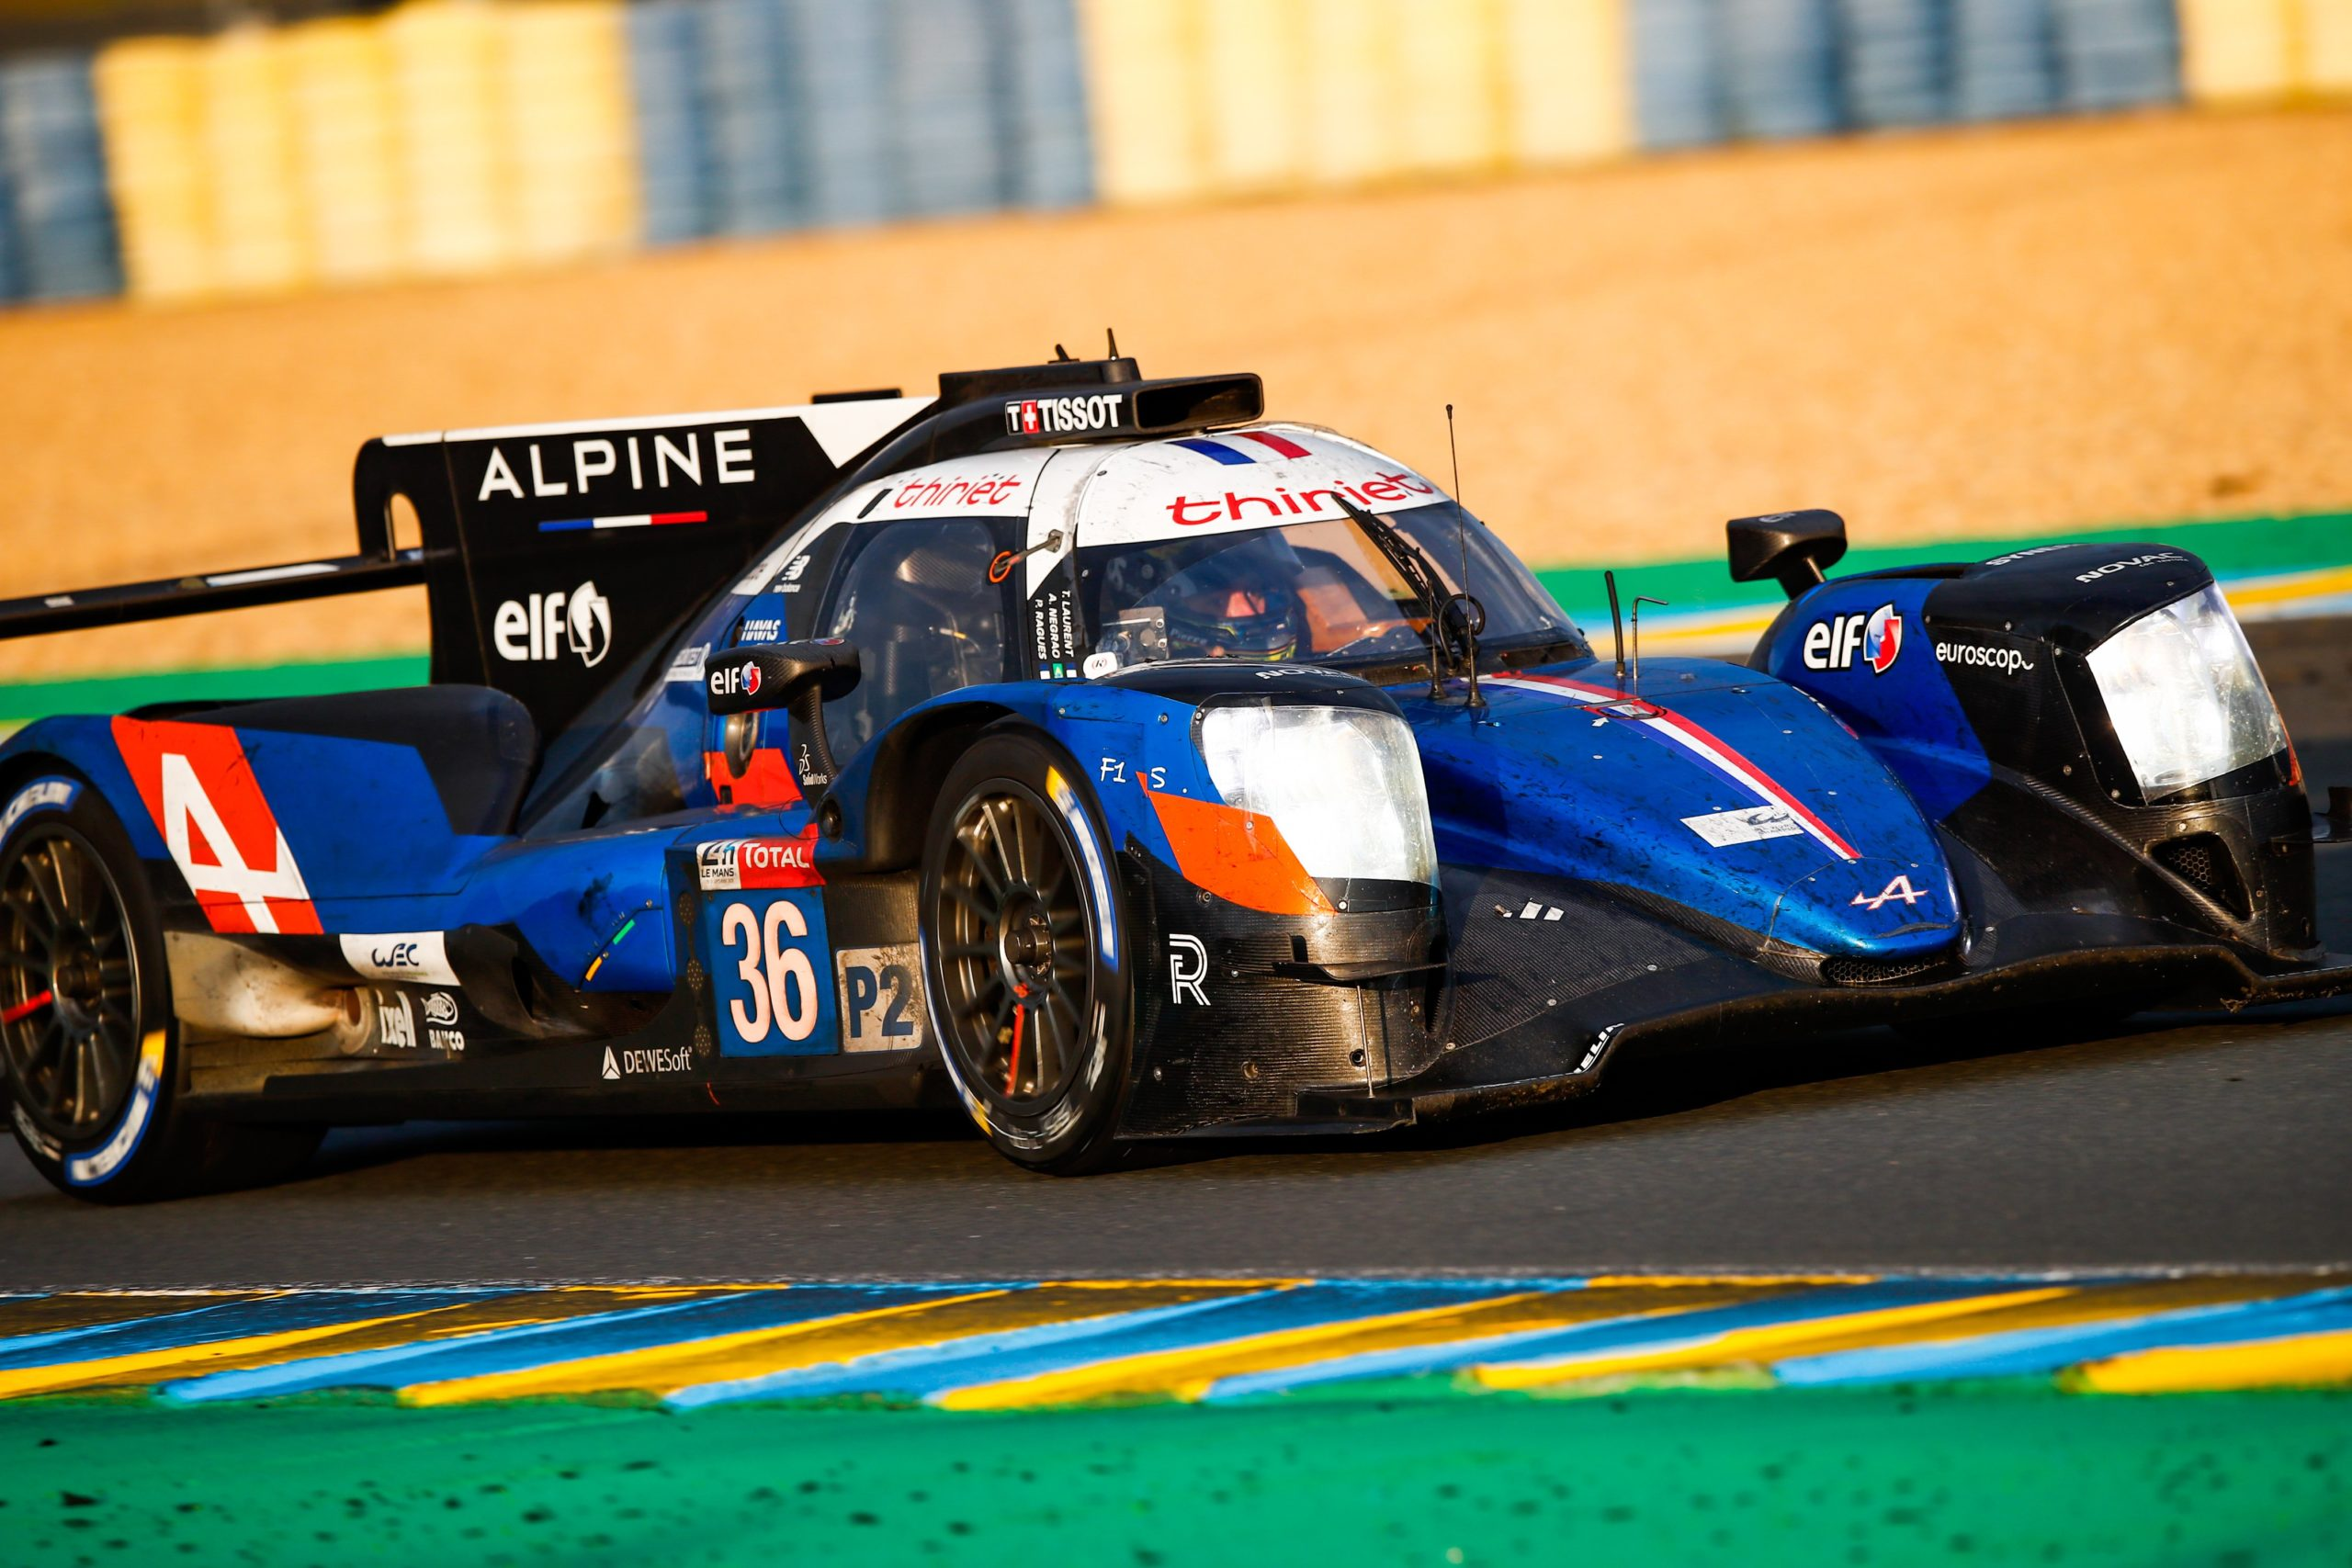 PIERRE RAGUES AND SIGNATECH ALPINE ELF FIGHT BACK TO FOURTH WITH DETERMINED LE MANS 24 HOURS